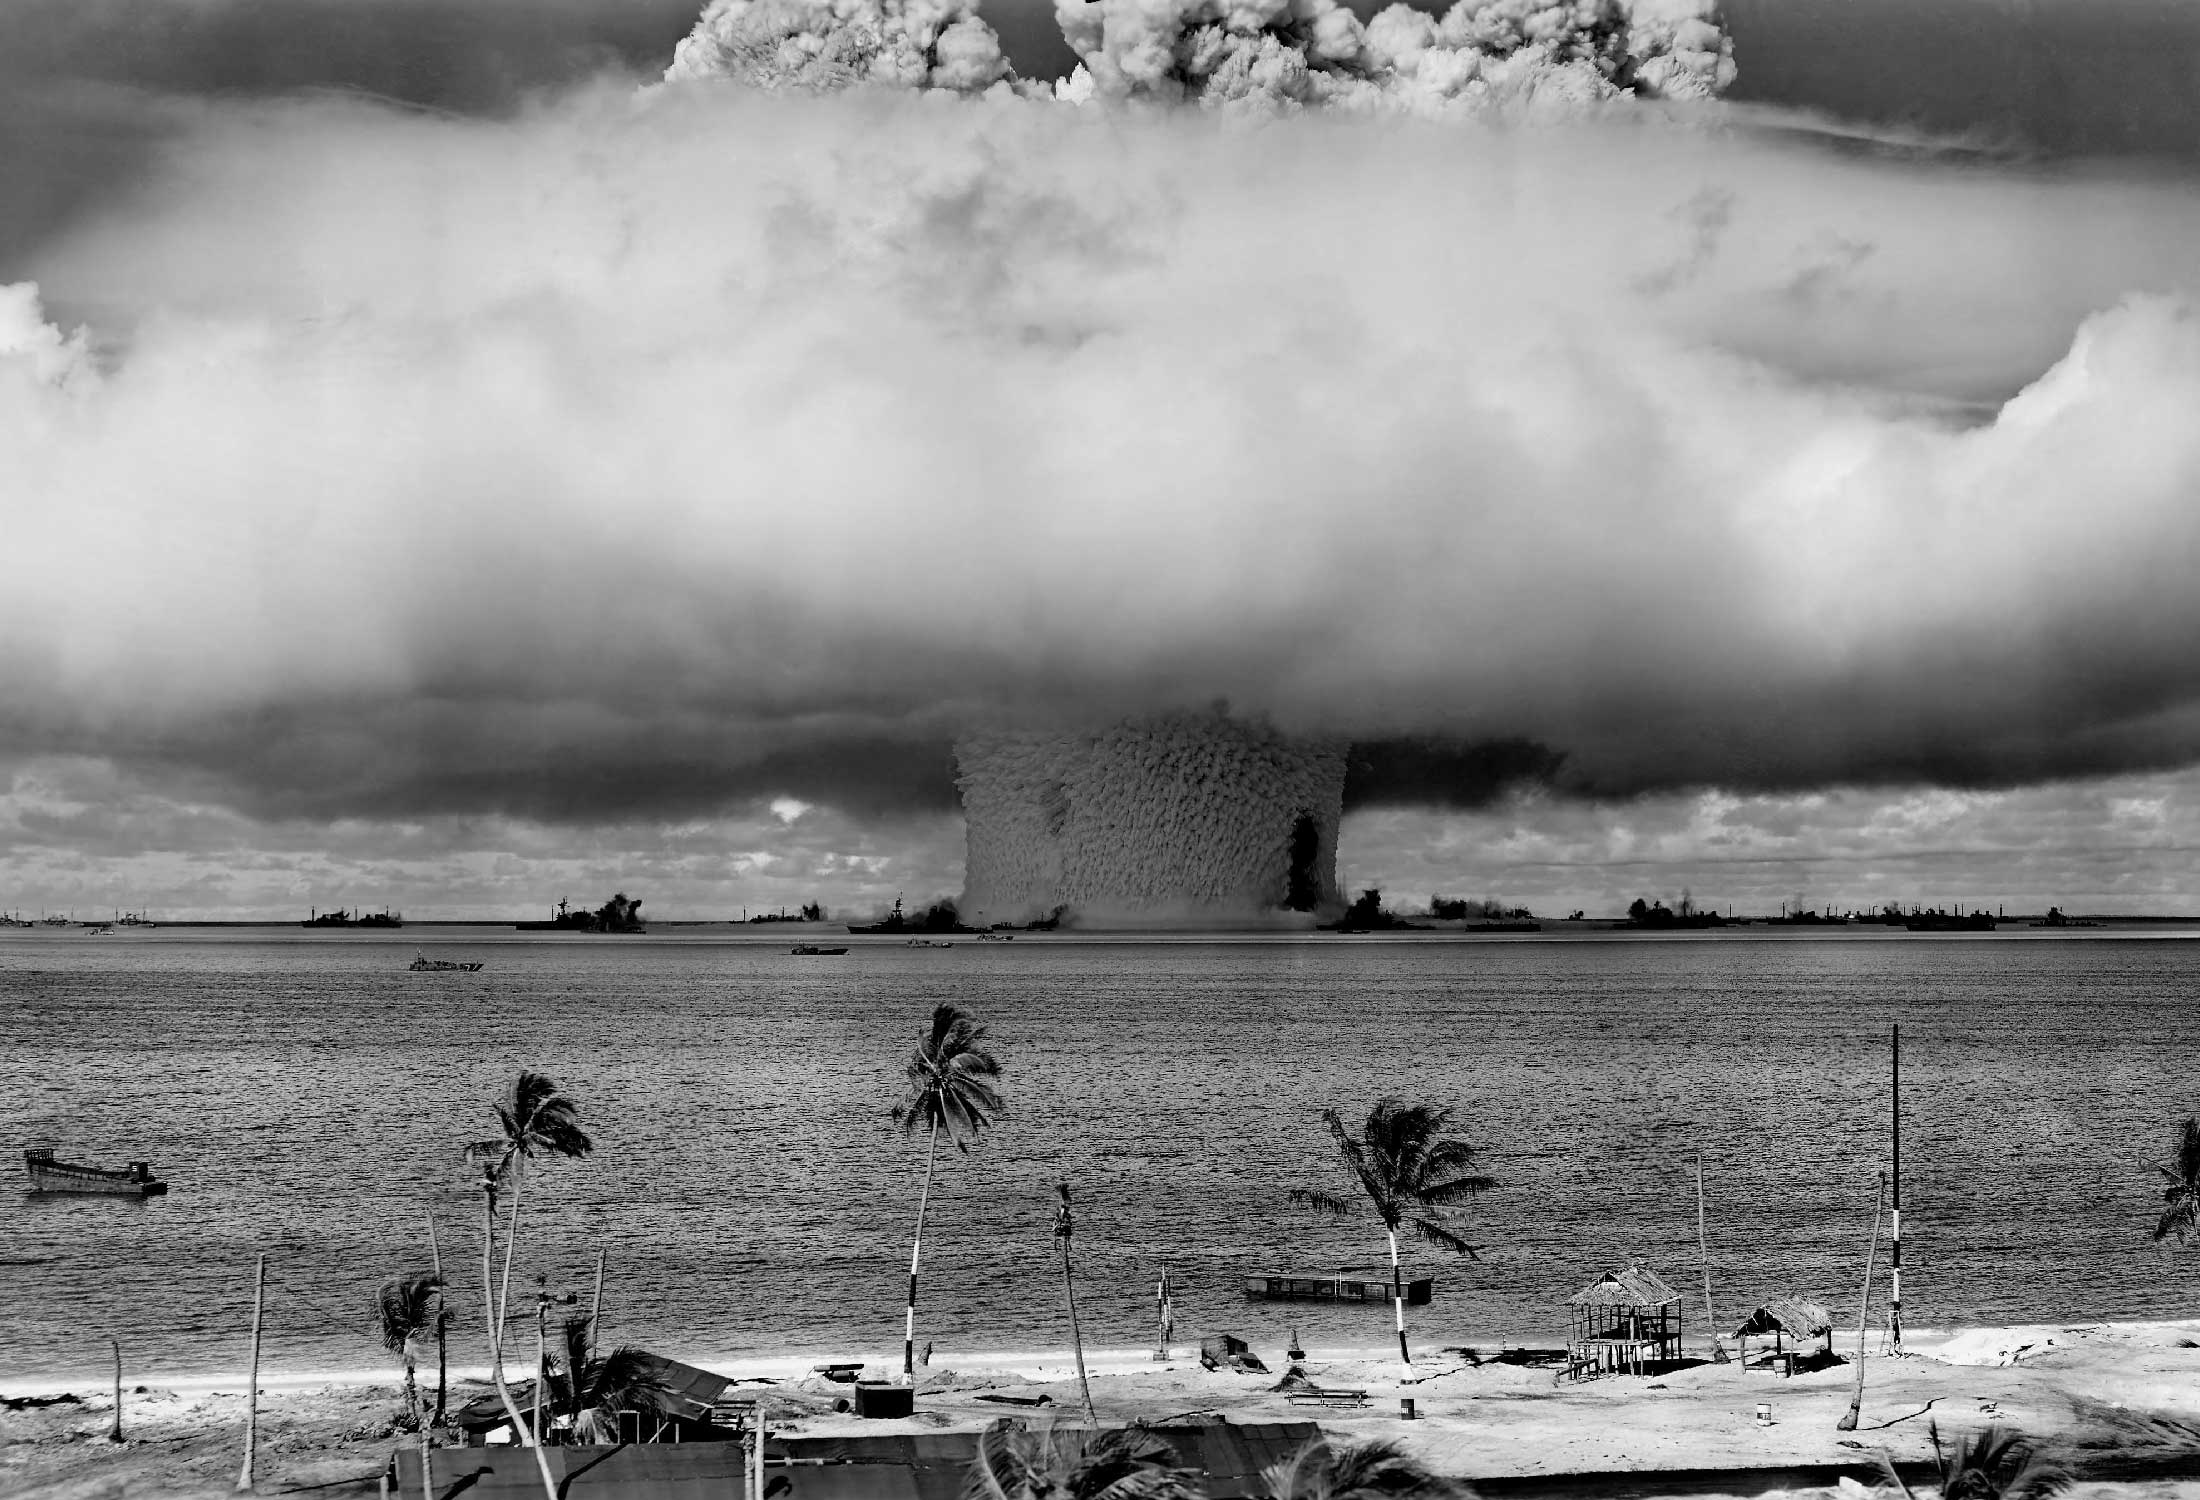 Nuclear bomb going off in coral islands